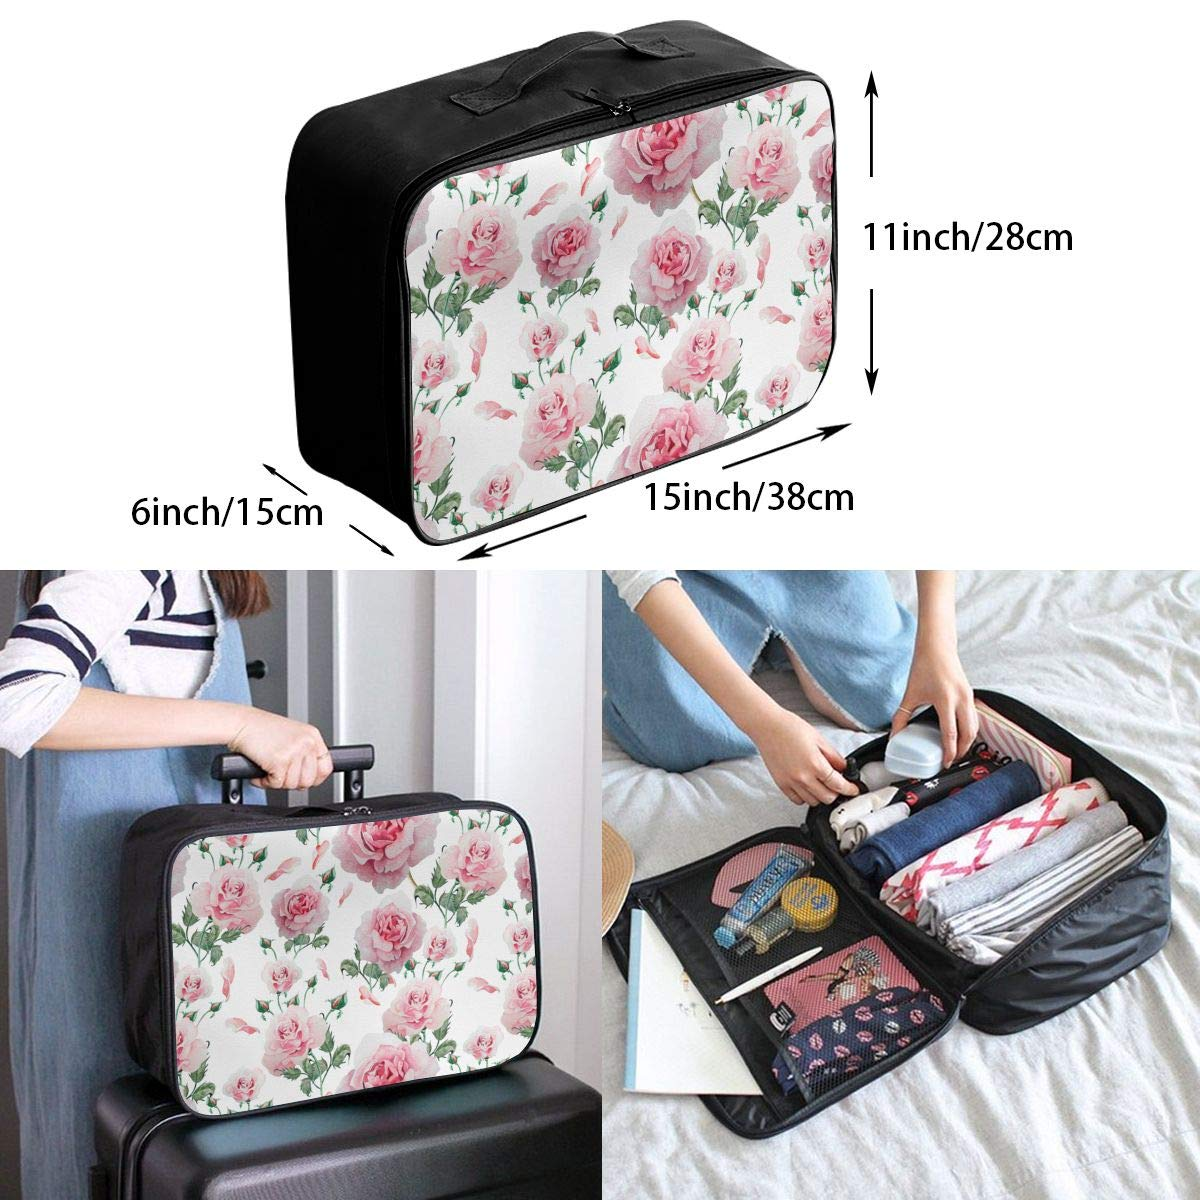 YueLJB Watercolor Roses Lightweight Large Capacity Portable Luggage Bag Travel Duffel Bag Storage Carry Luggage Duffle Tote Bag